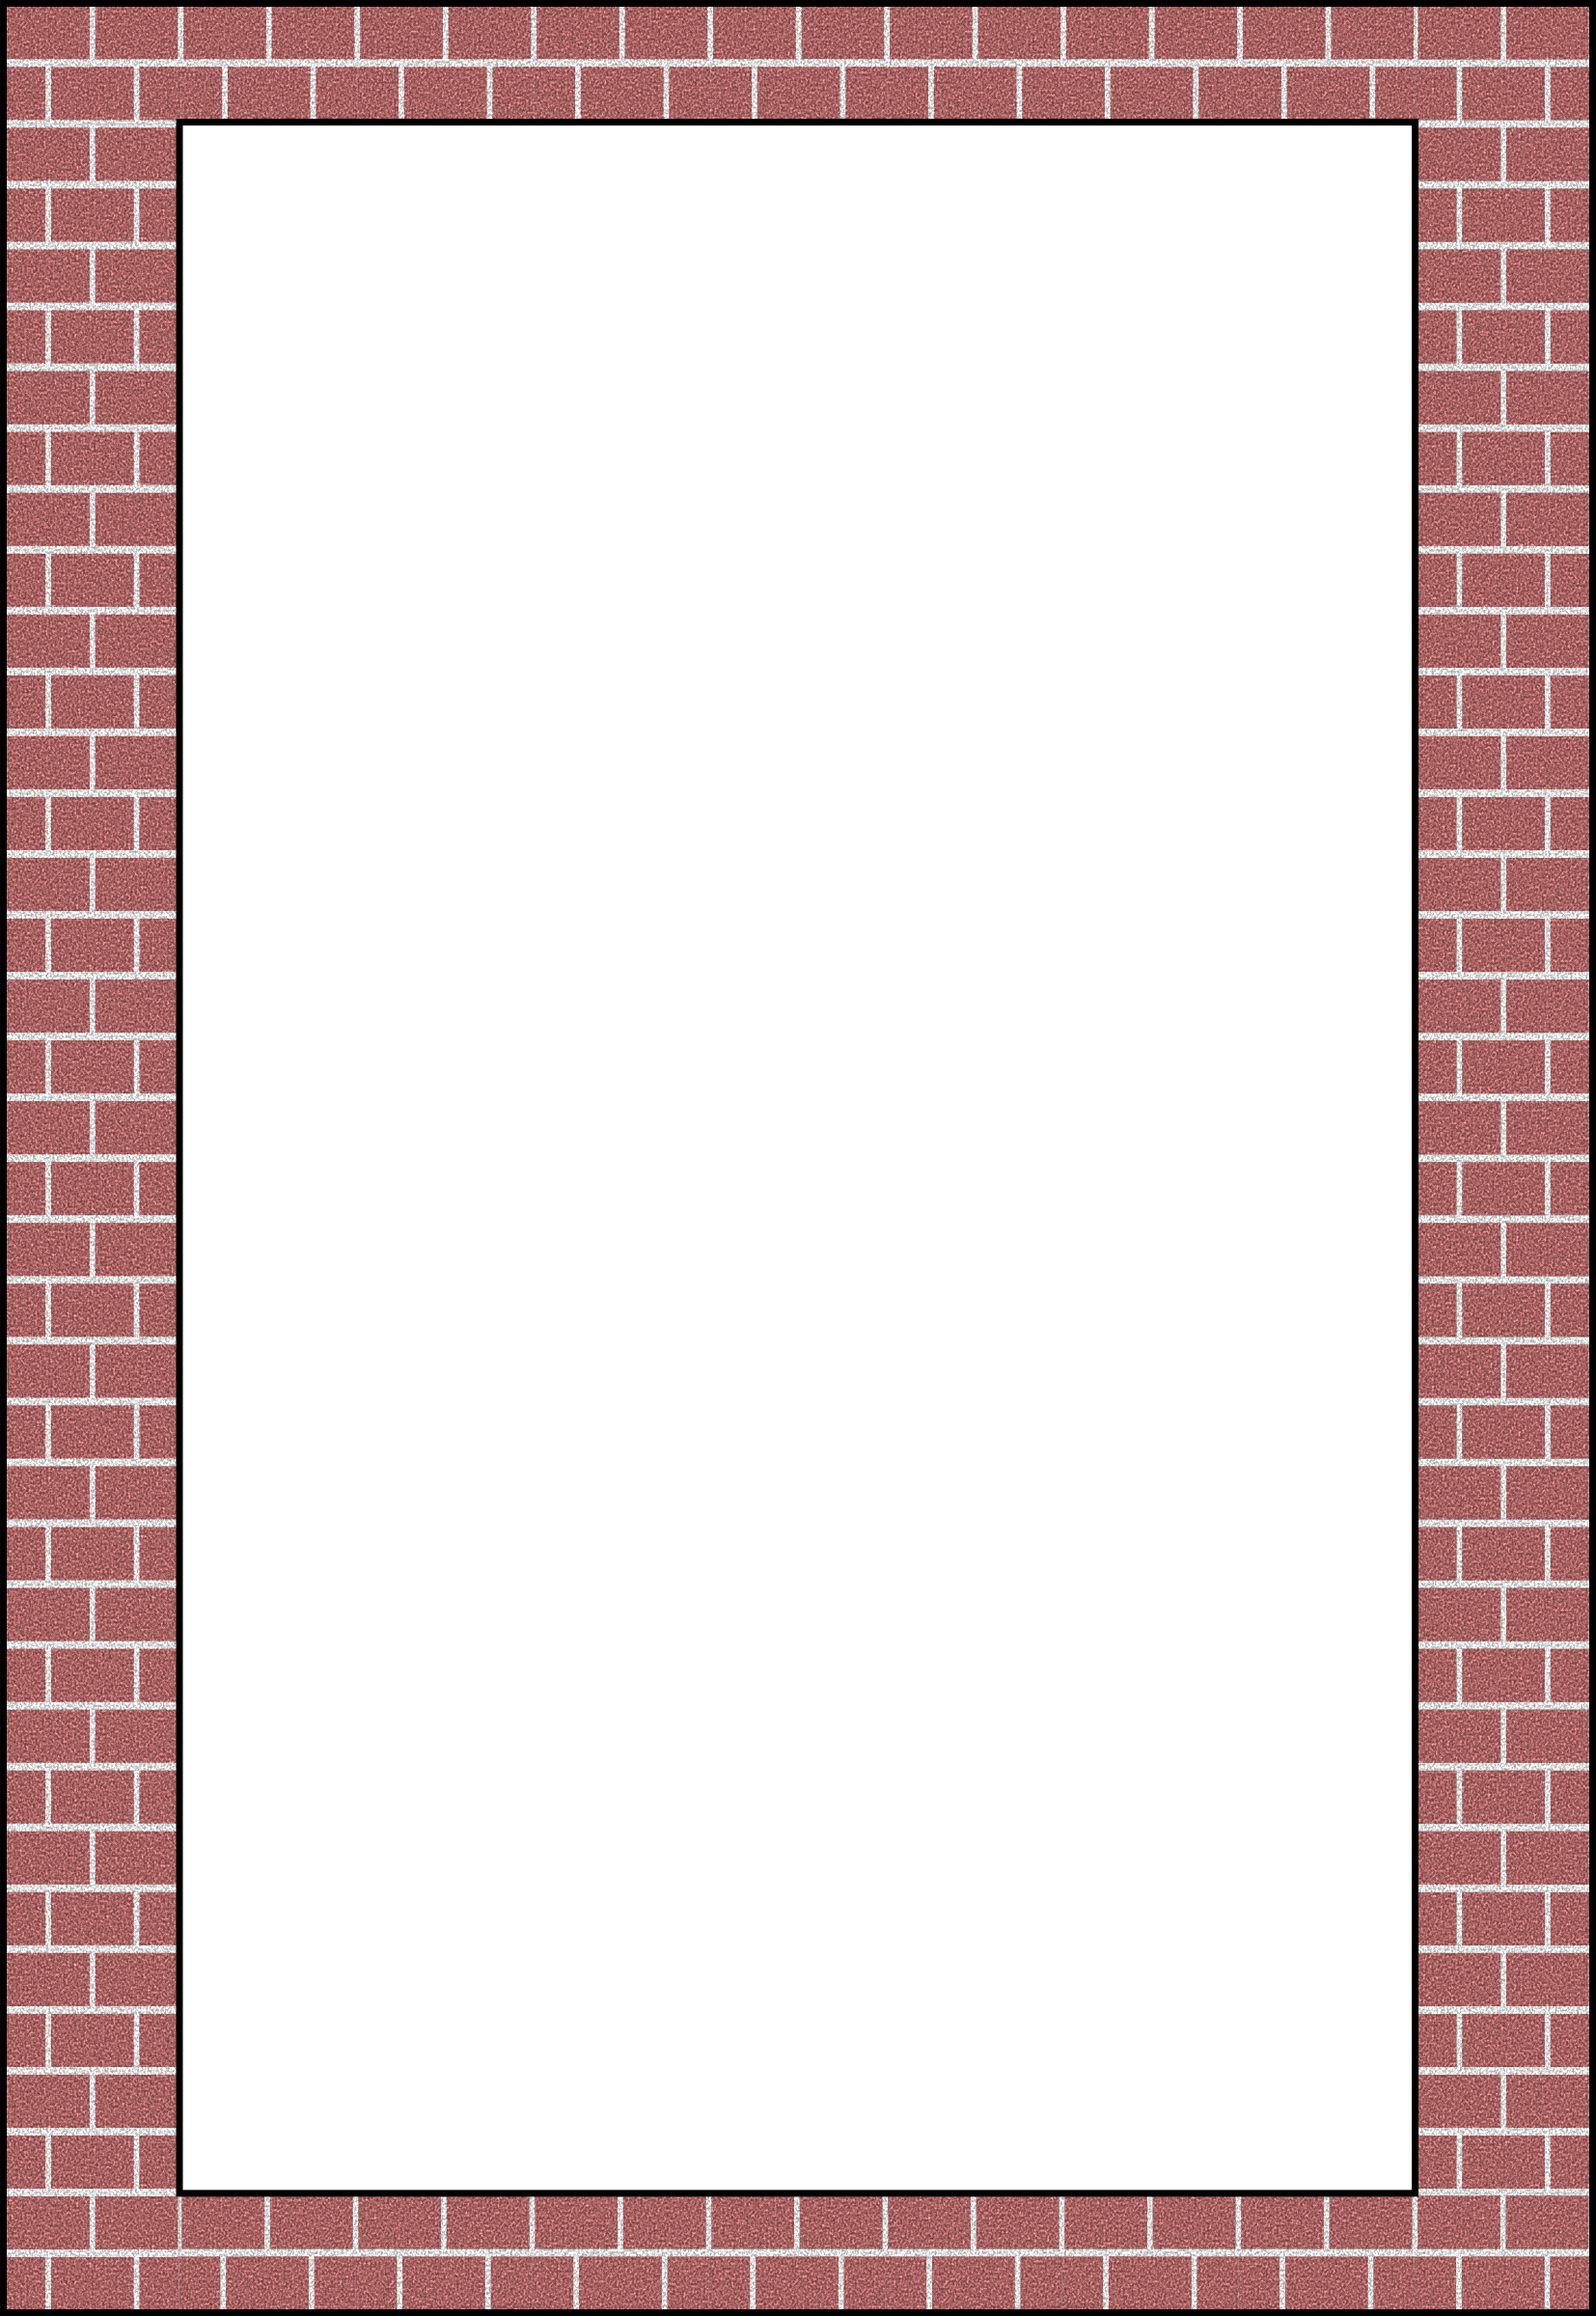 Brick border png. Openclipart org by arvin